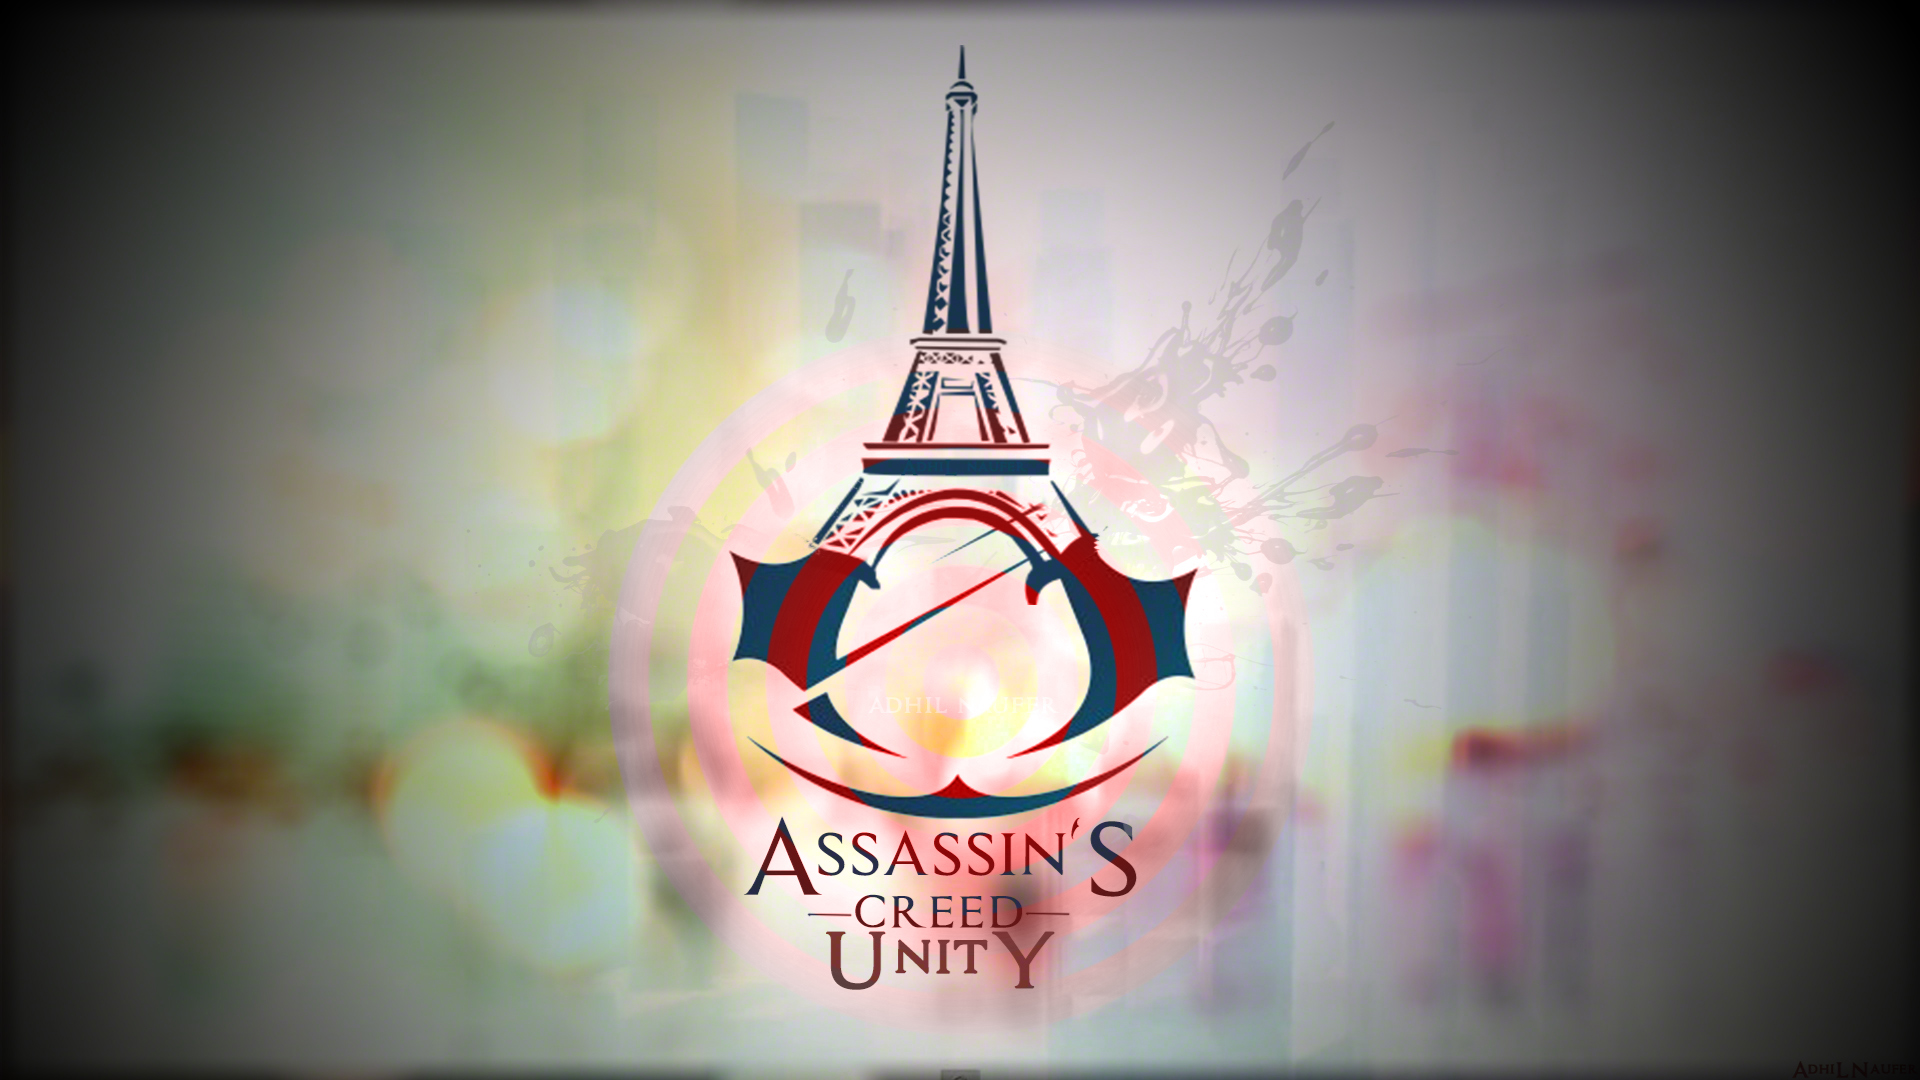 logo of assassin's creed unity game hd 1920x1080 1080p wallpaper and ...